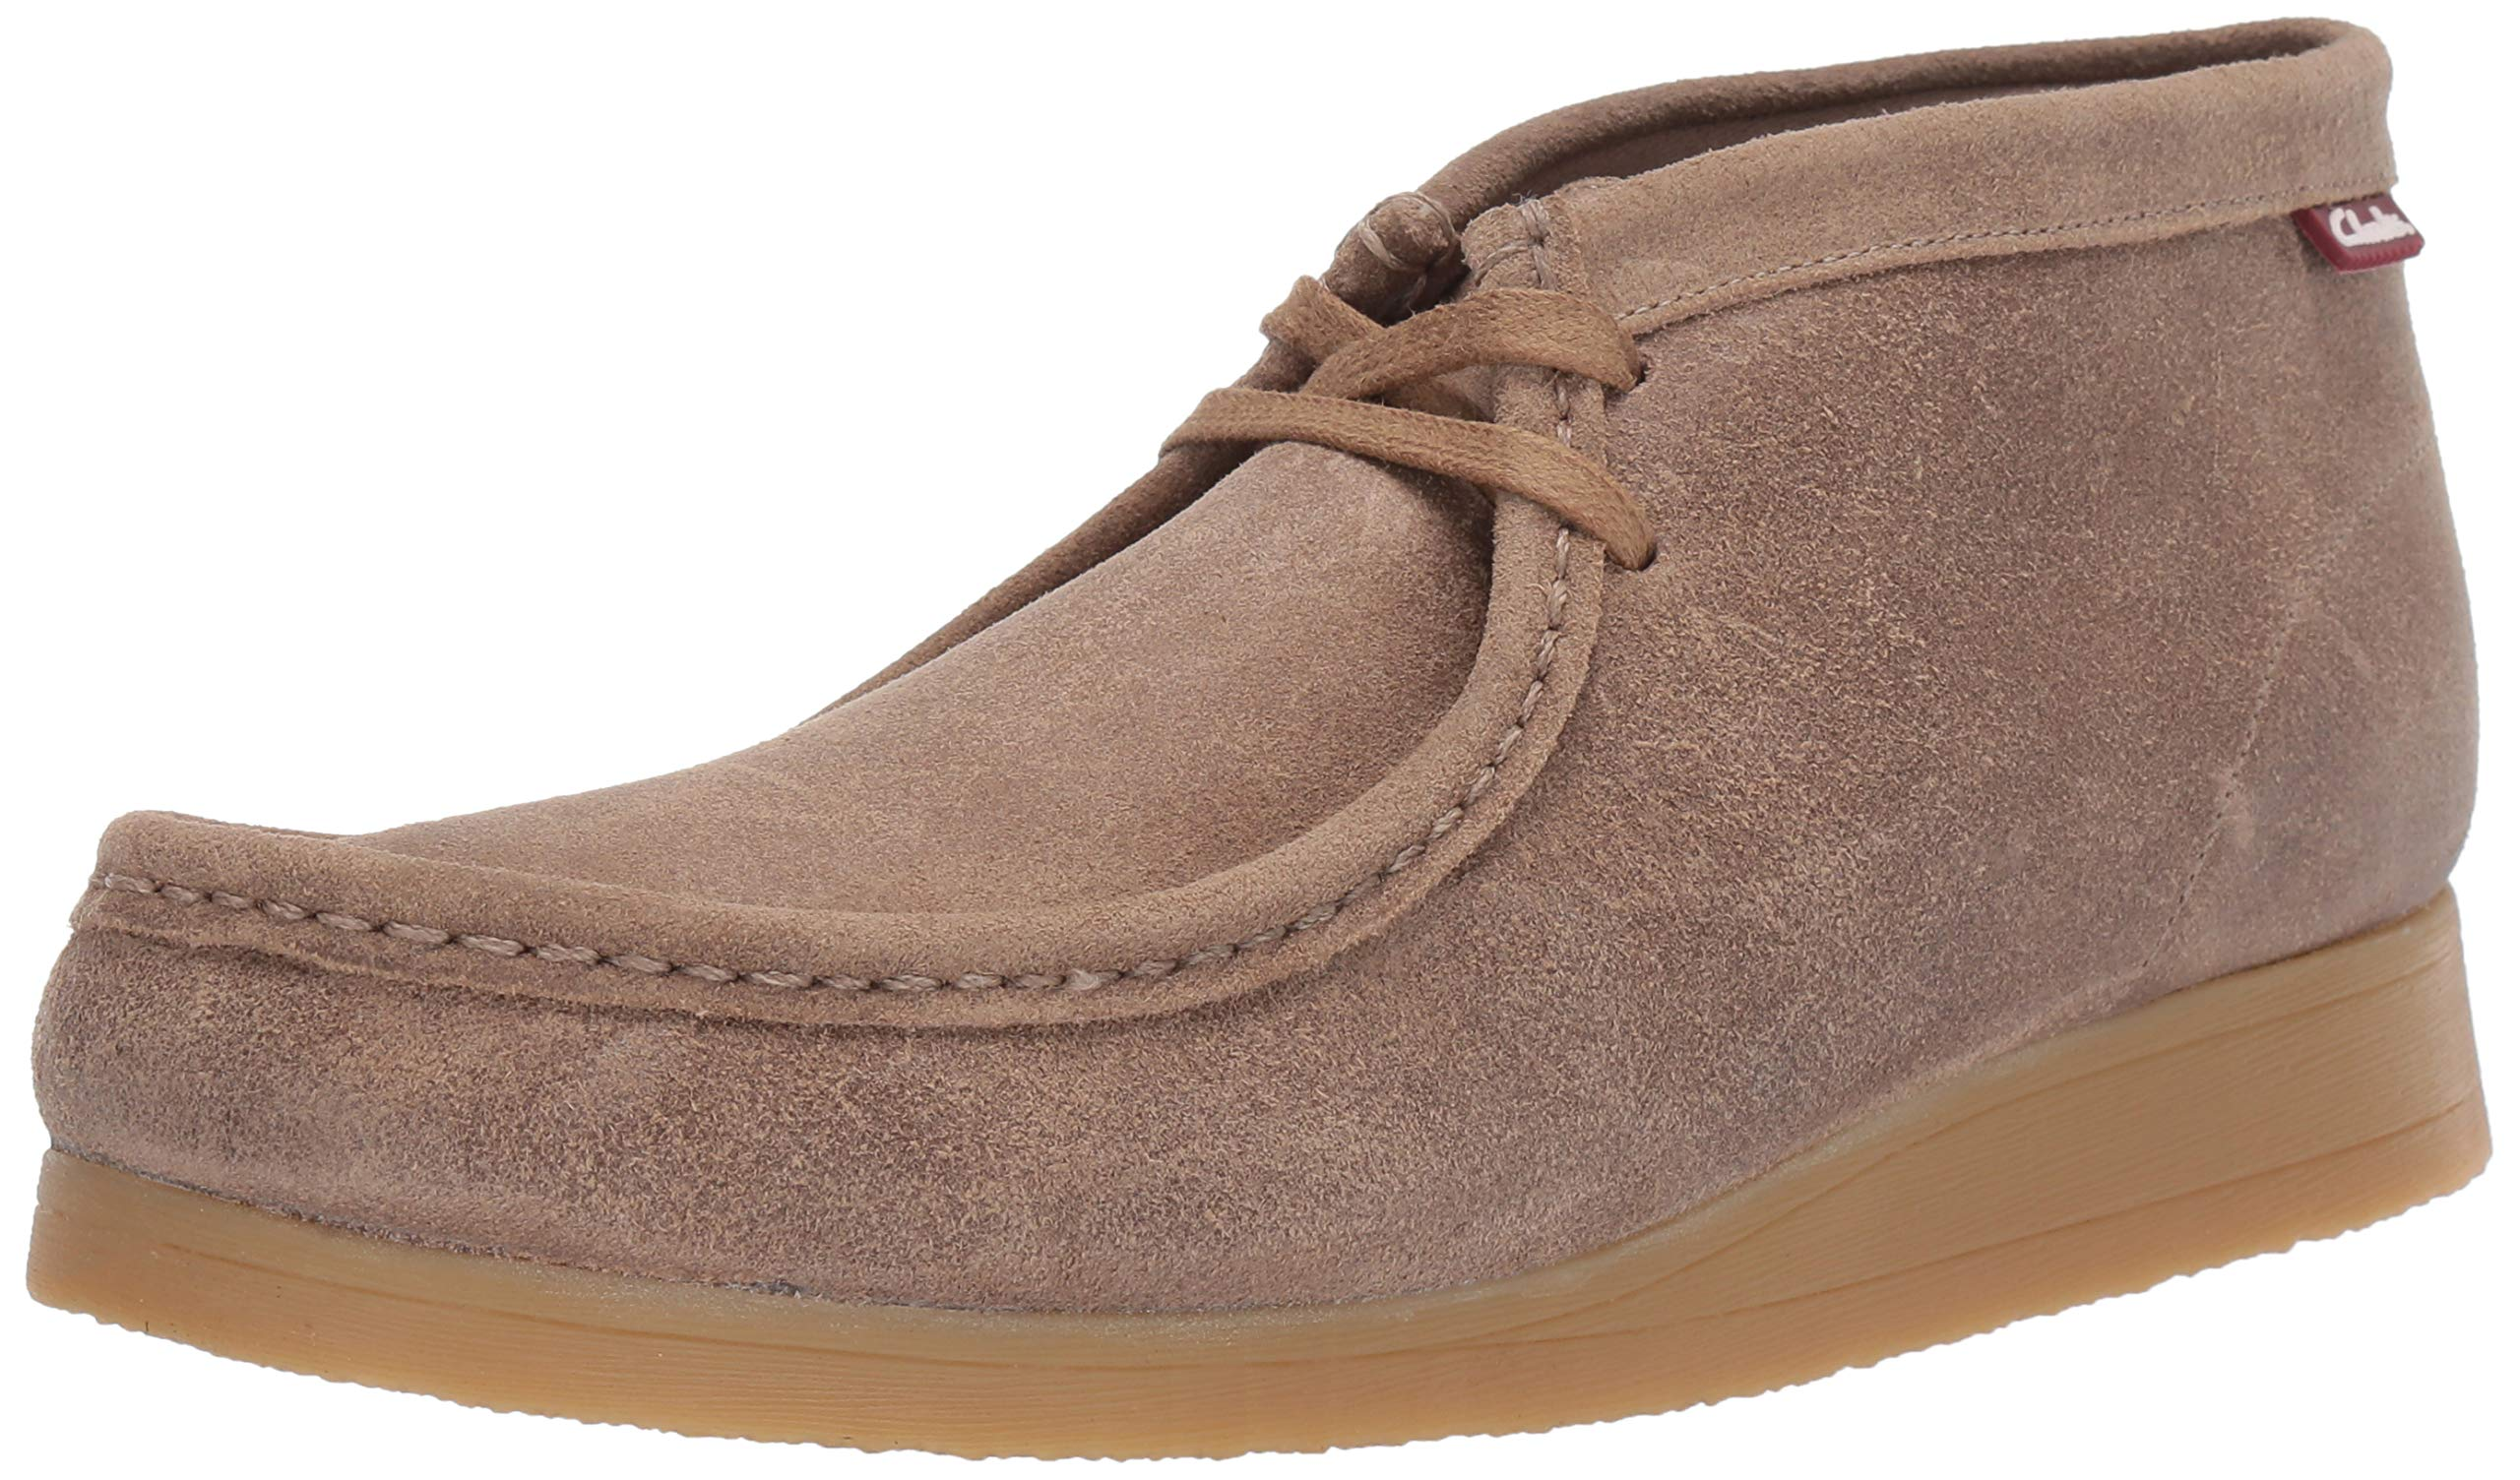 CLARKS Stinson Fashion Taupe Distressed